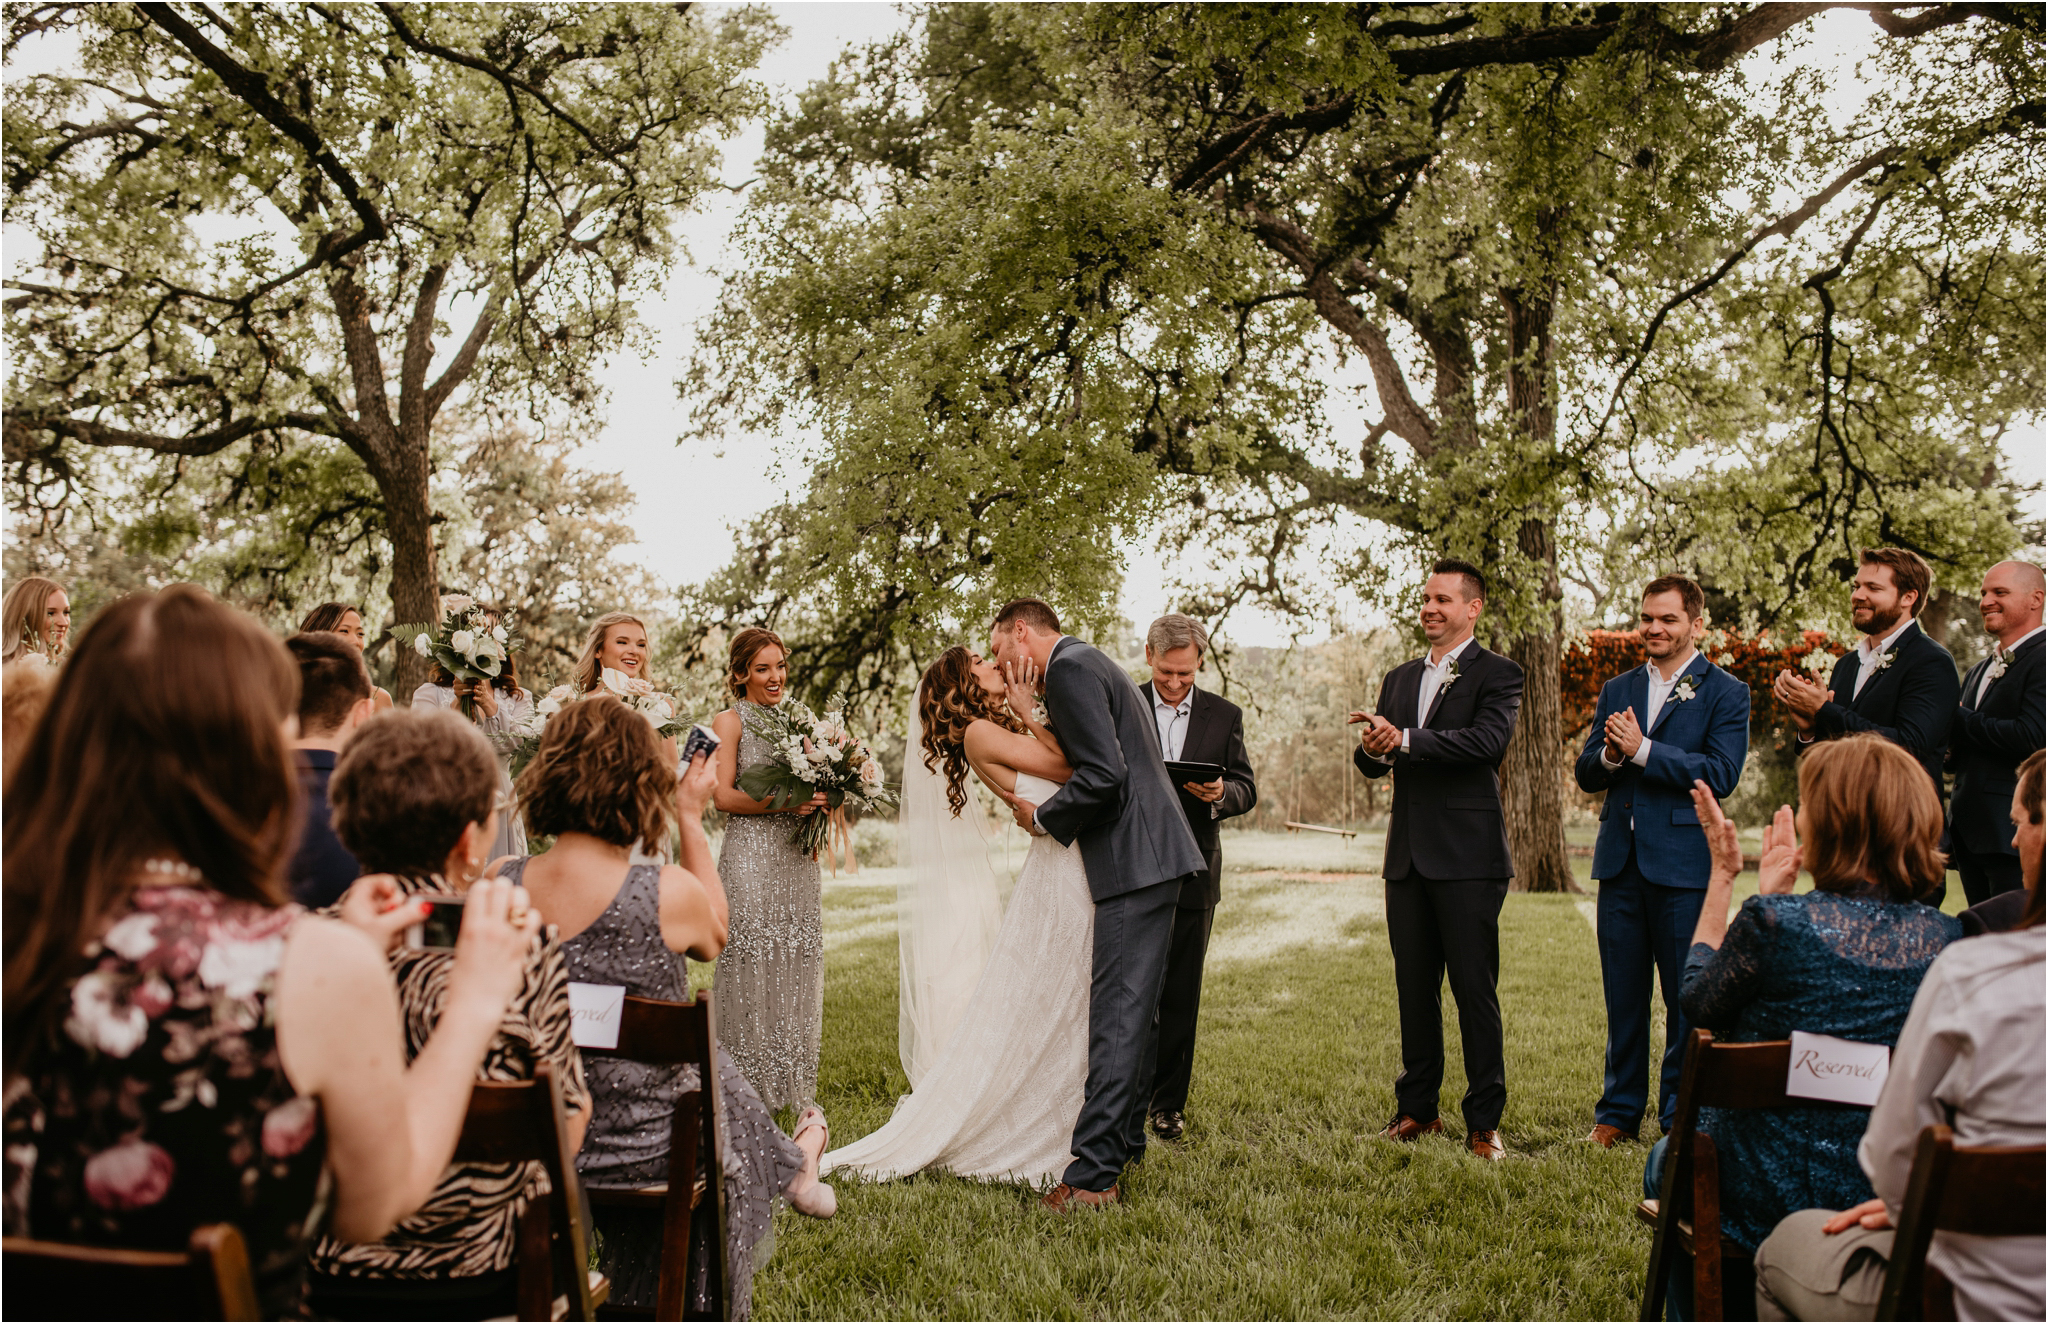 jillian-and-scott-pecan-springs-ranch-texas-and-washington-wedding-photographer-073.jpg